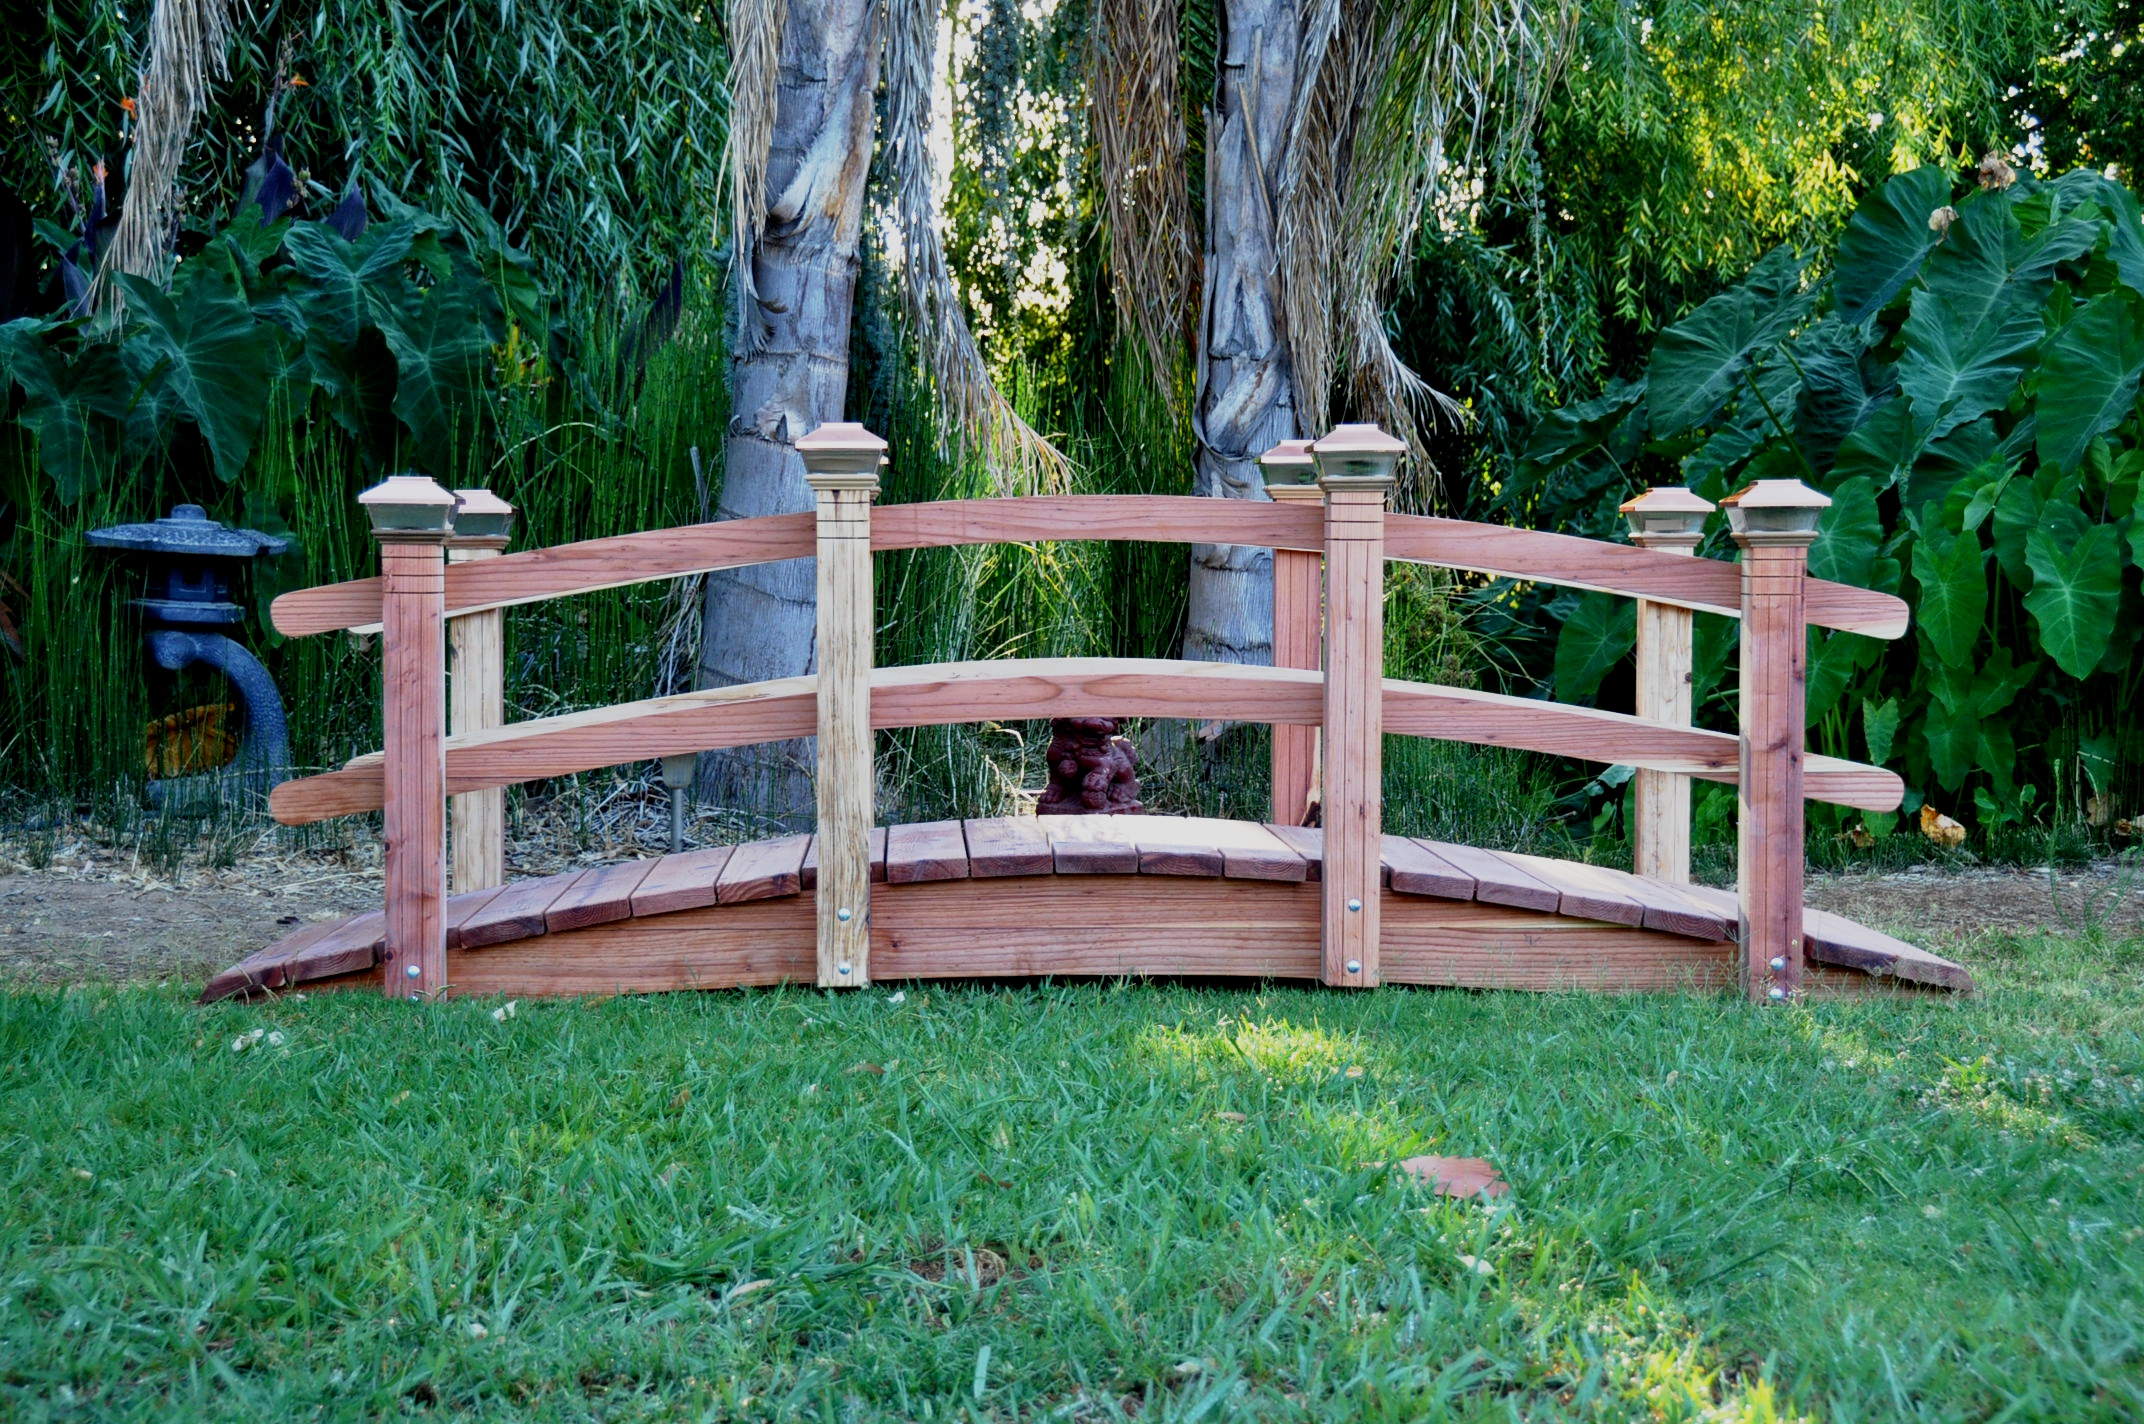 12 foot span curved double rail garden bridge - Japanese Wooden Garden Bridge